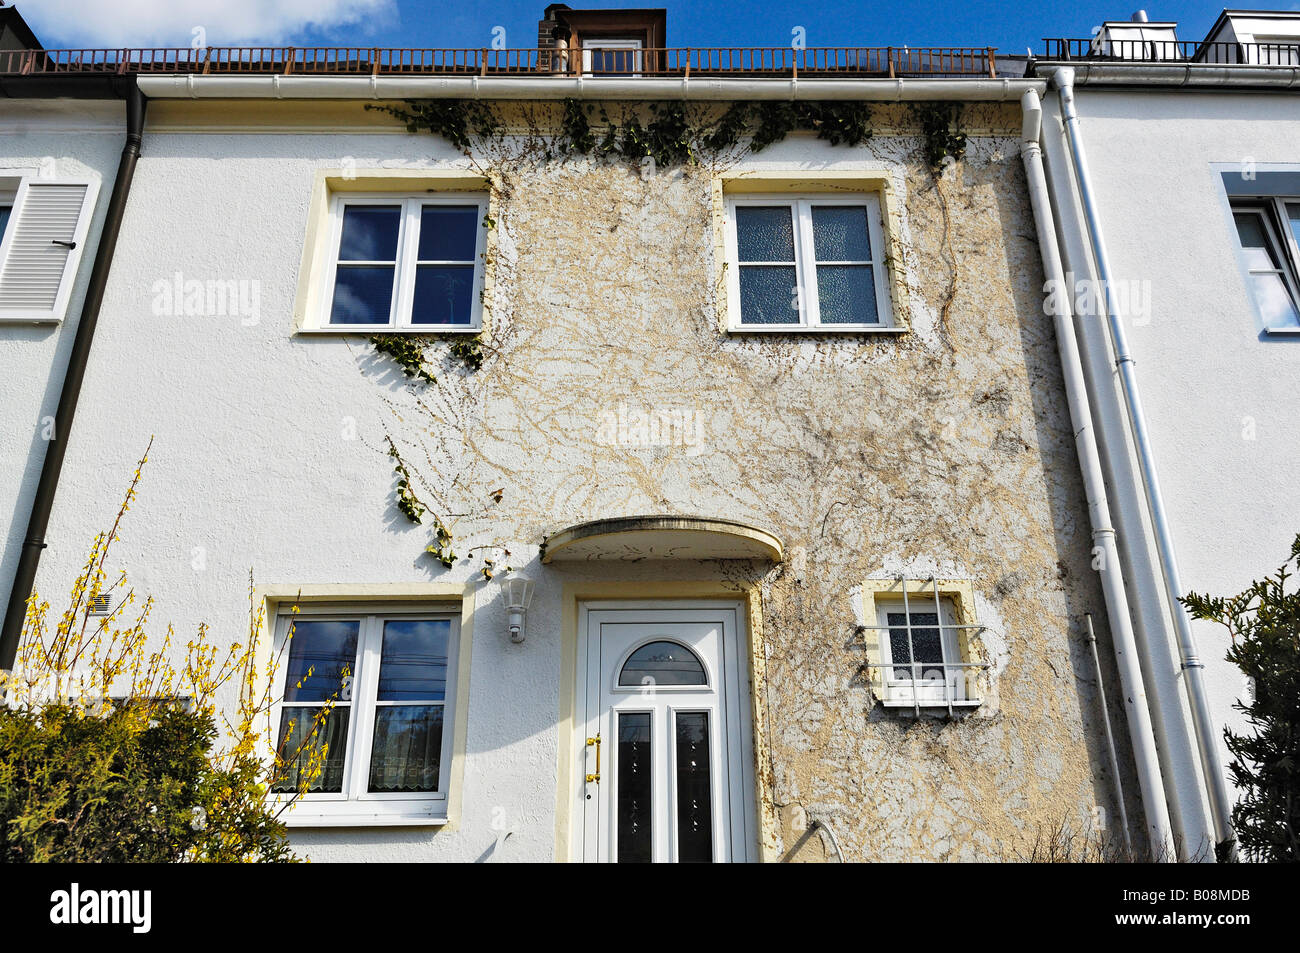 Building facade showing marks left by almost completely removed ivy (Hedera), Munich, Bavaria, Germany - Stock Image